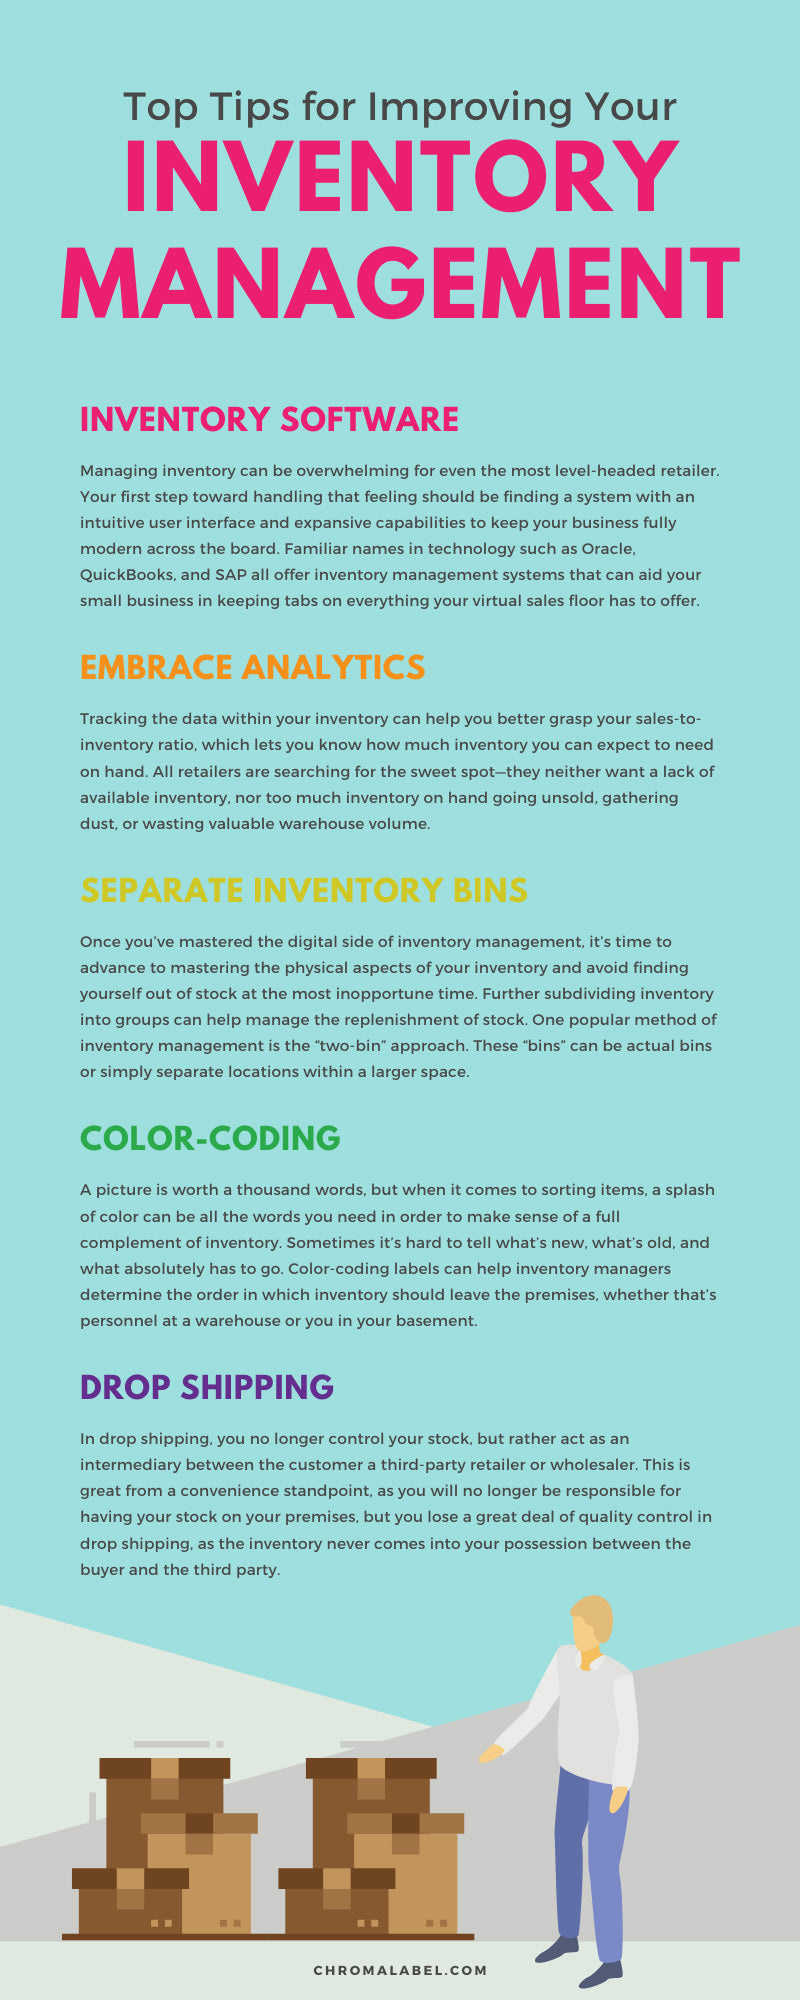 Top Tips for Improving Your Inventory Management